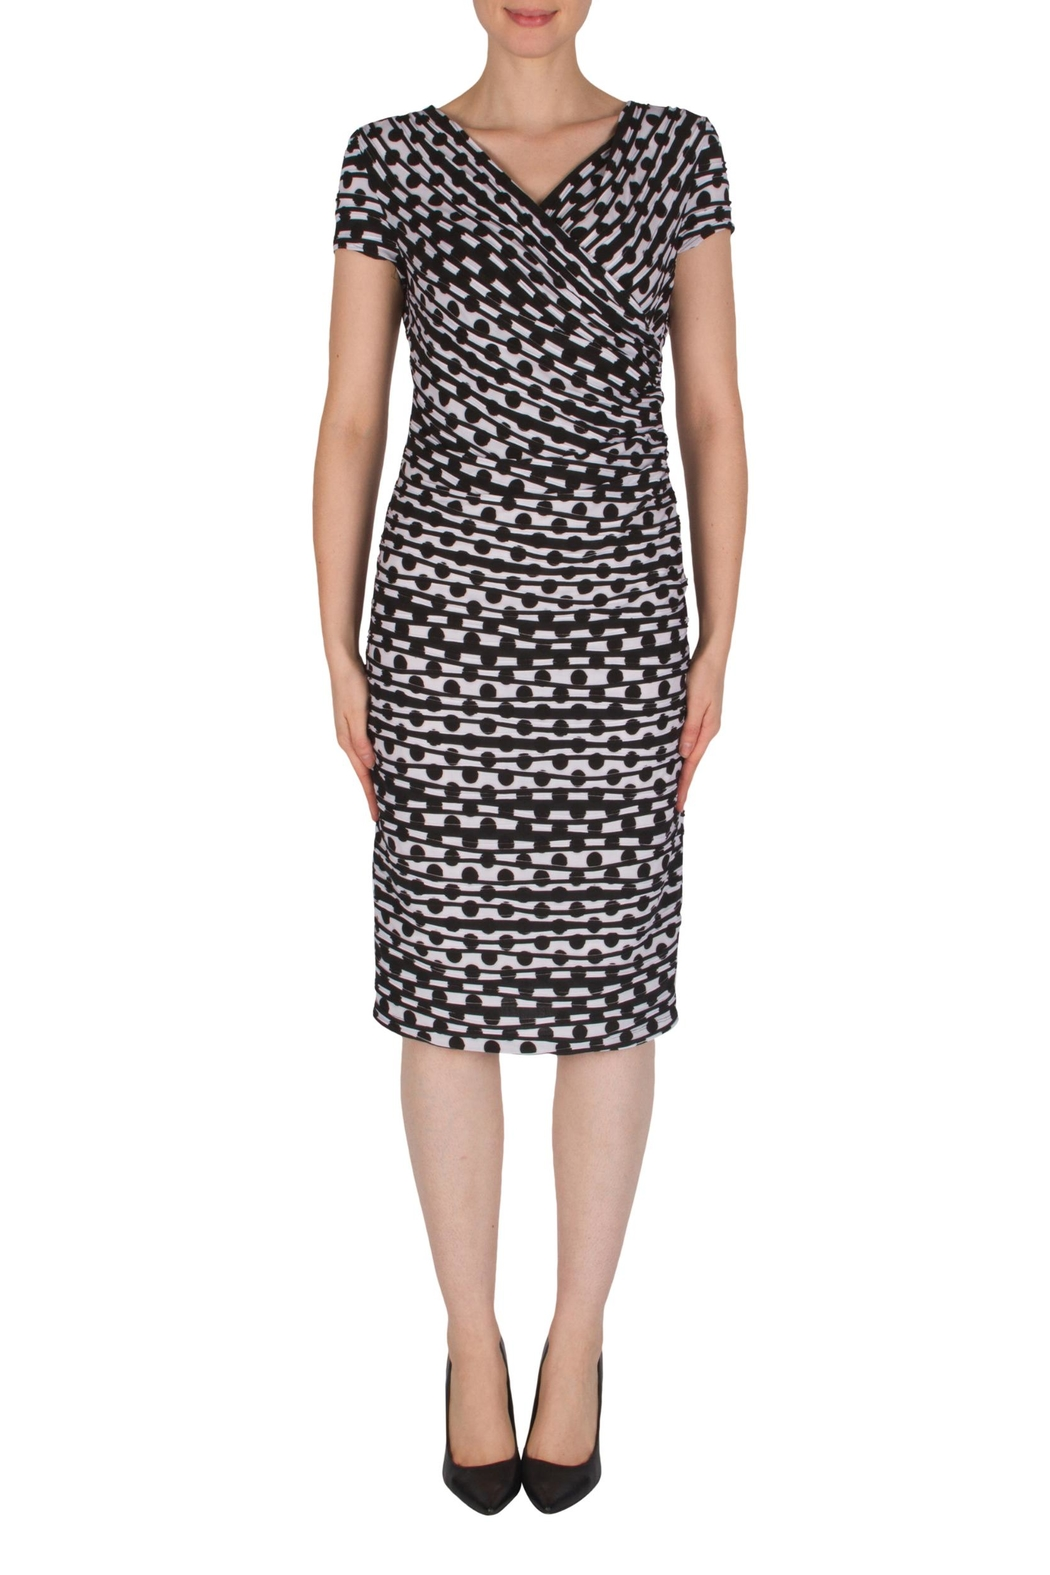 Joseph Ribkoff Faux-Wrap Dress - Main Image